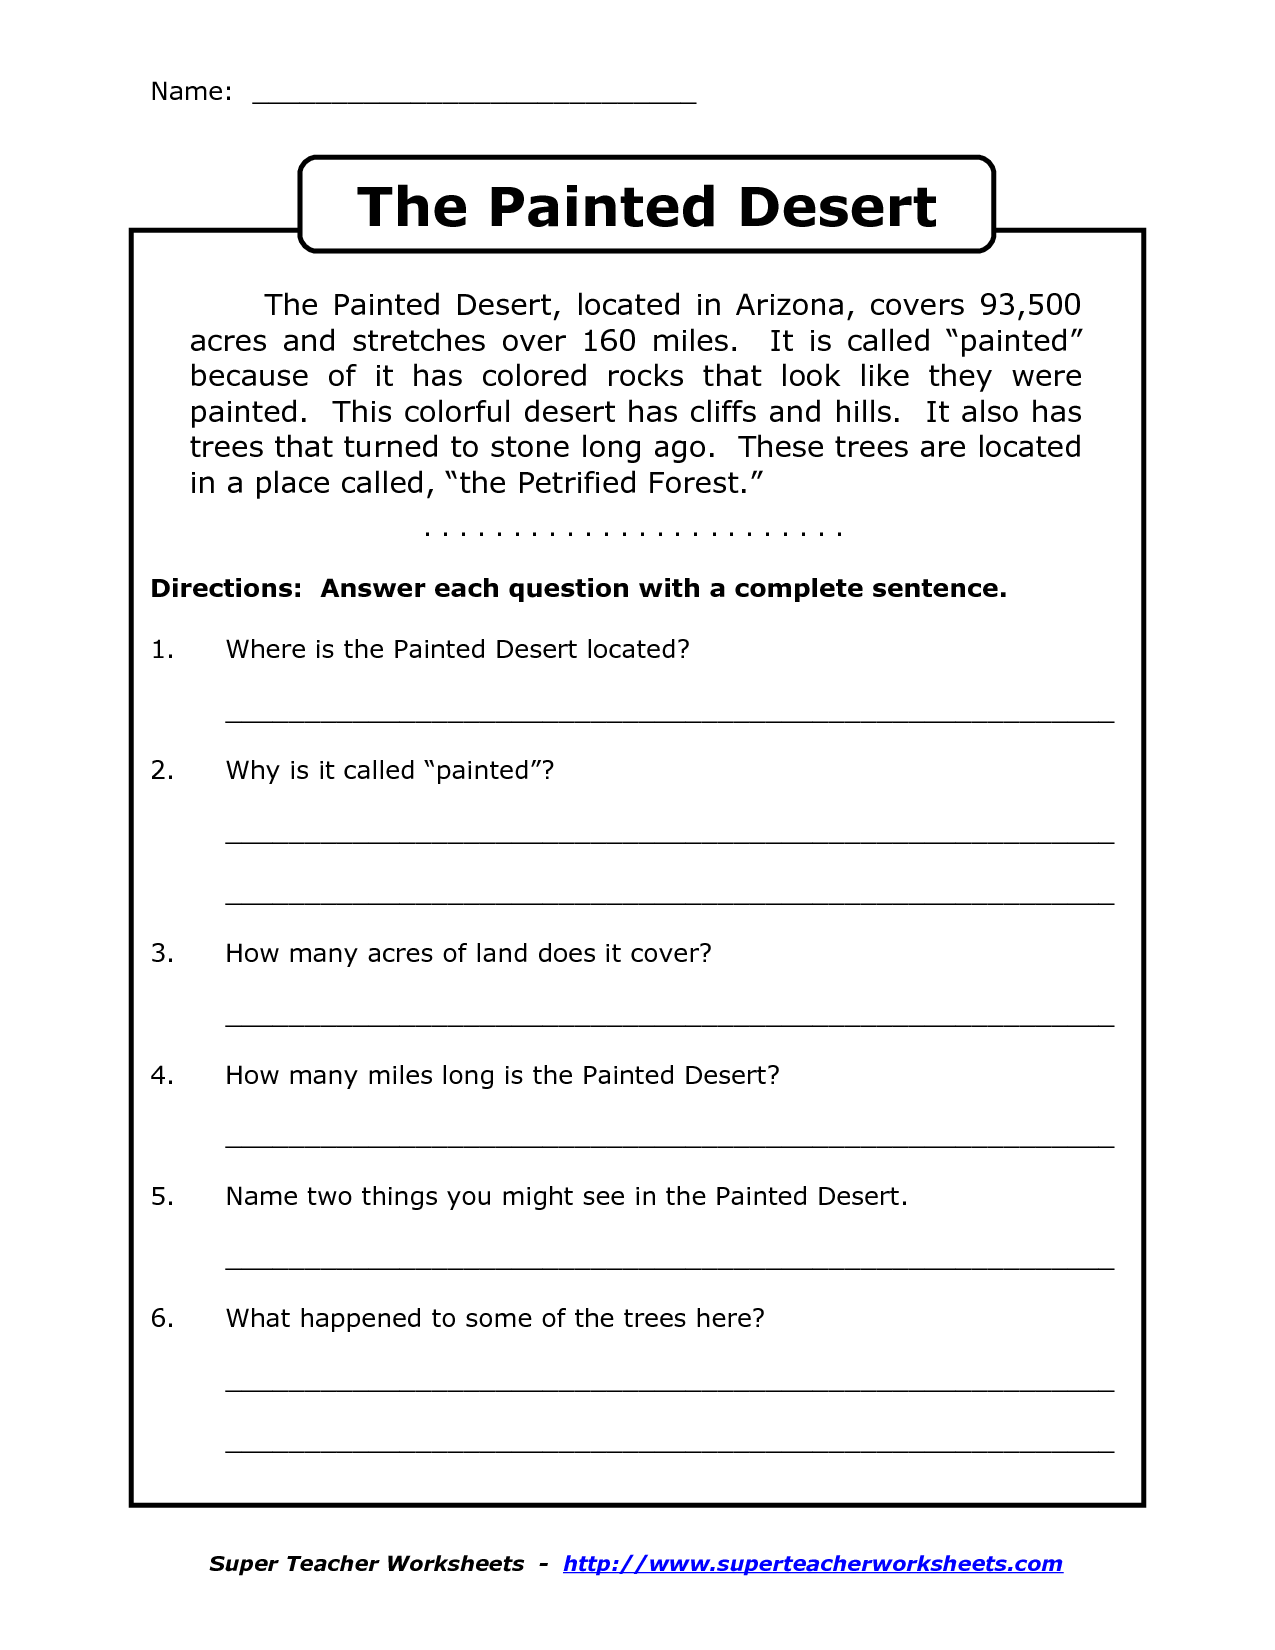 Reading Worksheets for 4th Grade – Reading Worksheets for 4th Grade